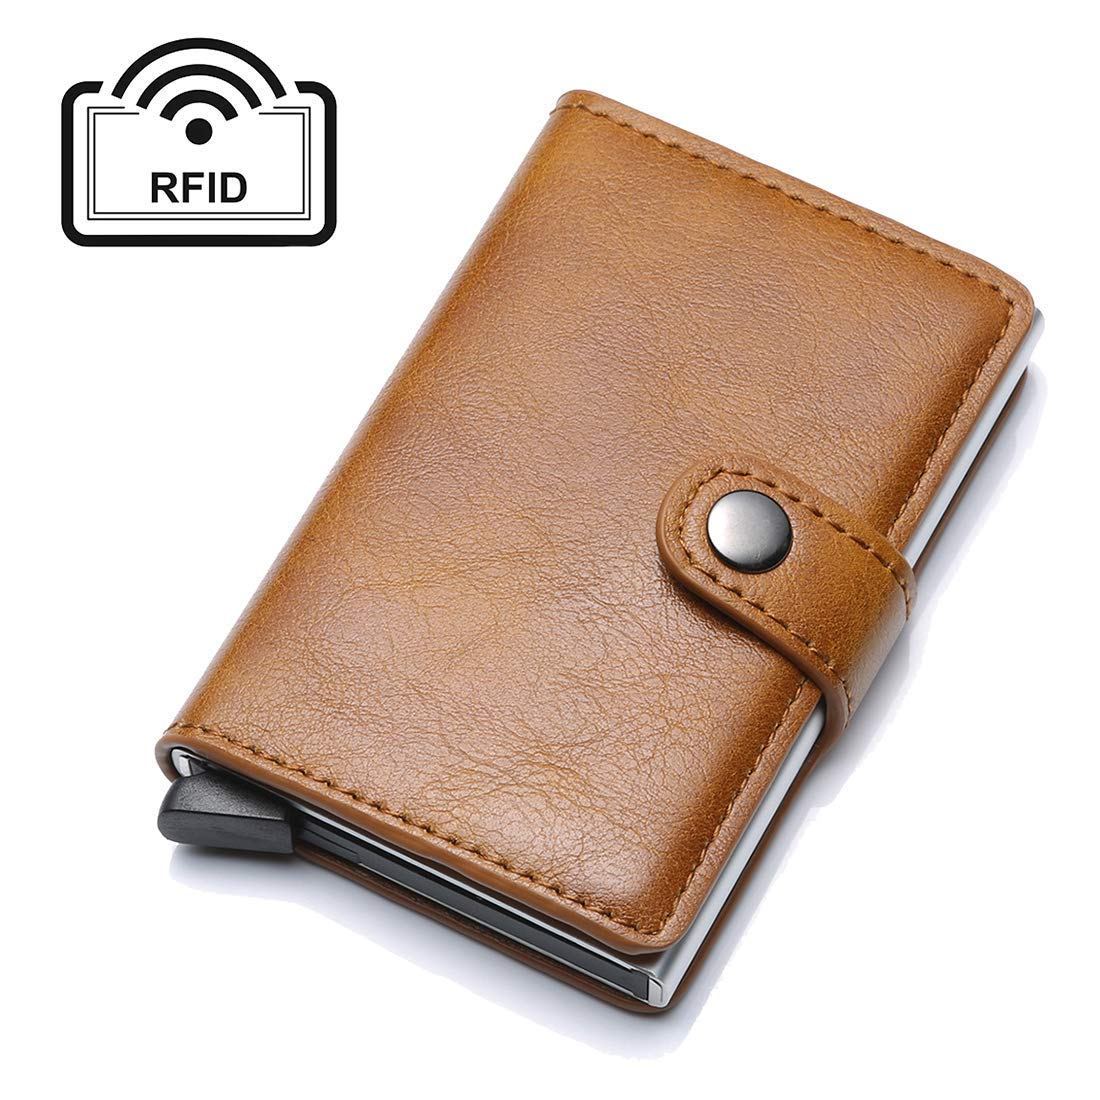 Business Card Credit Card Holder RFID Blocking Geniune Leather Vintage Aluminum MEETO